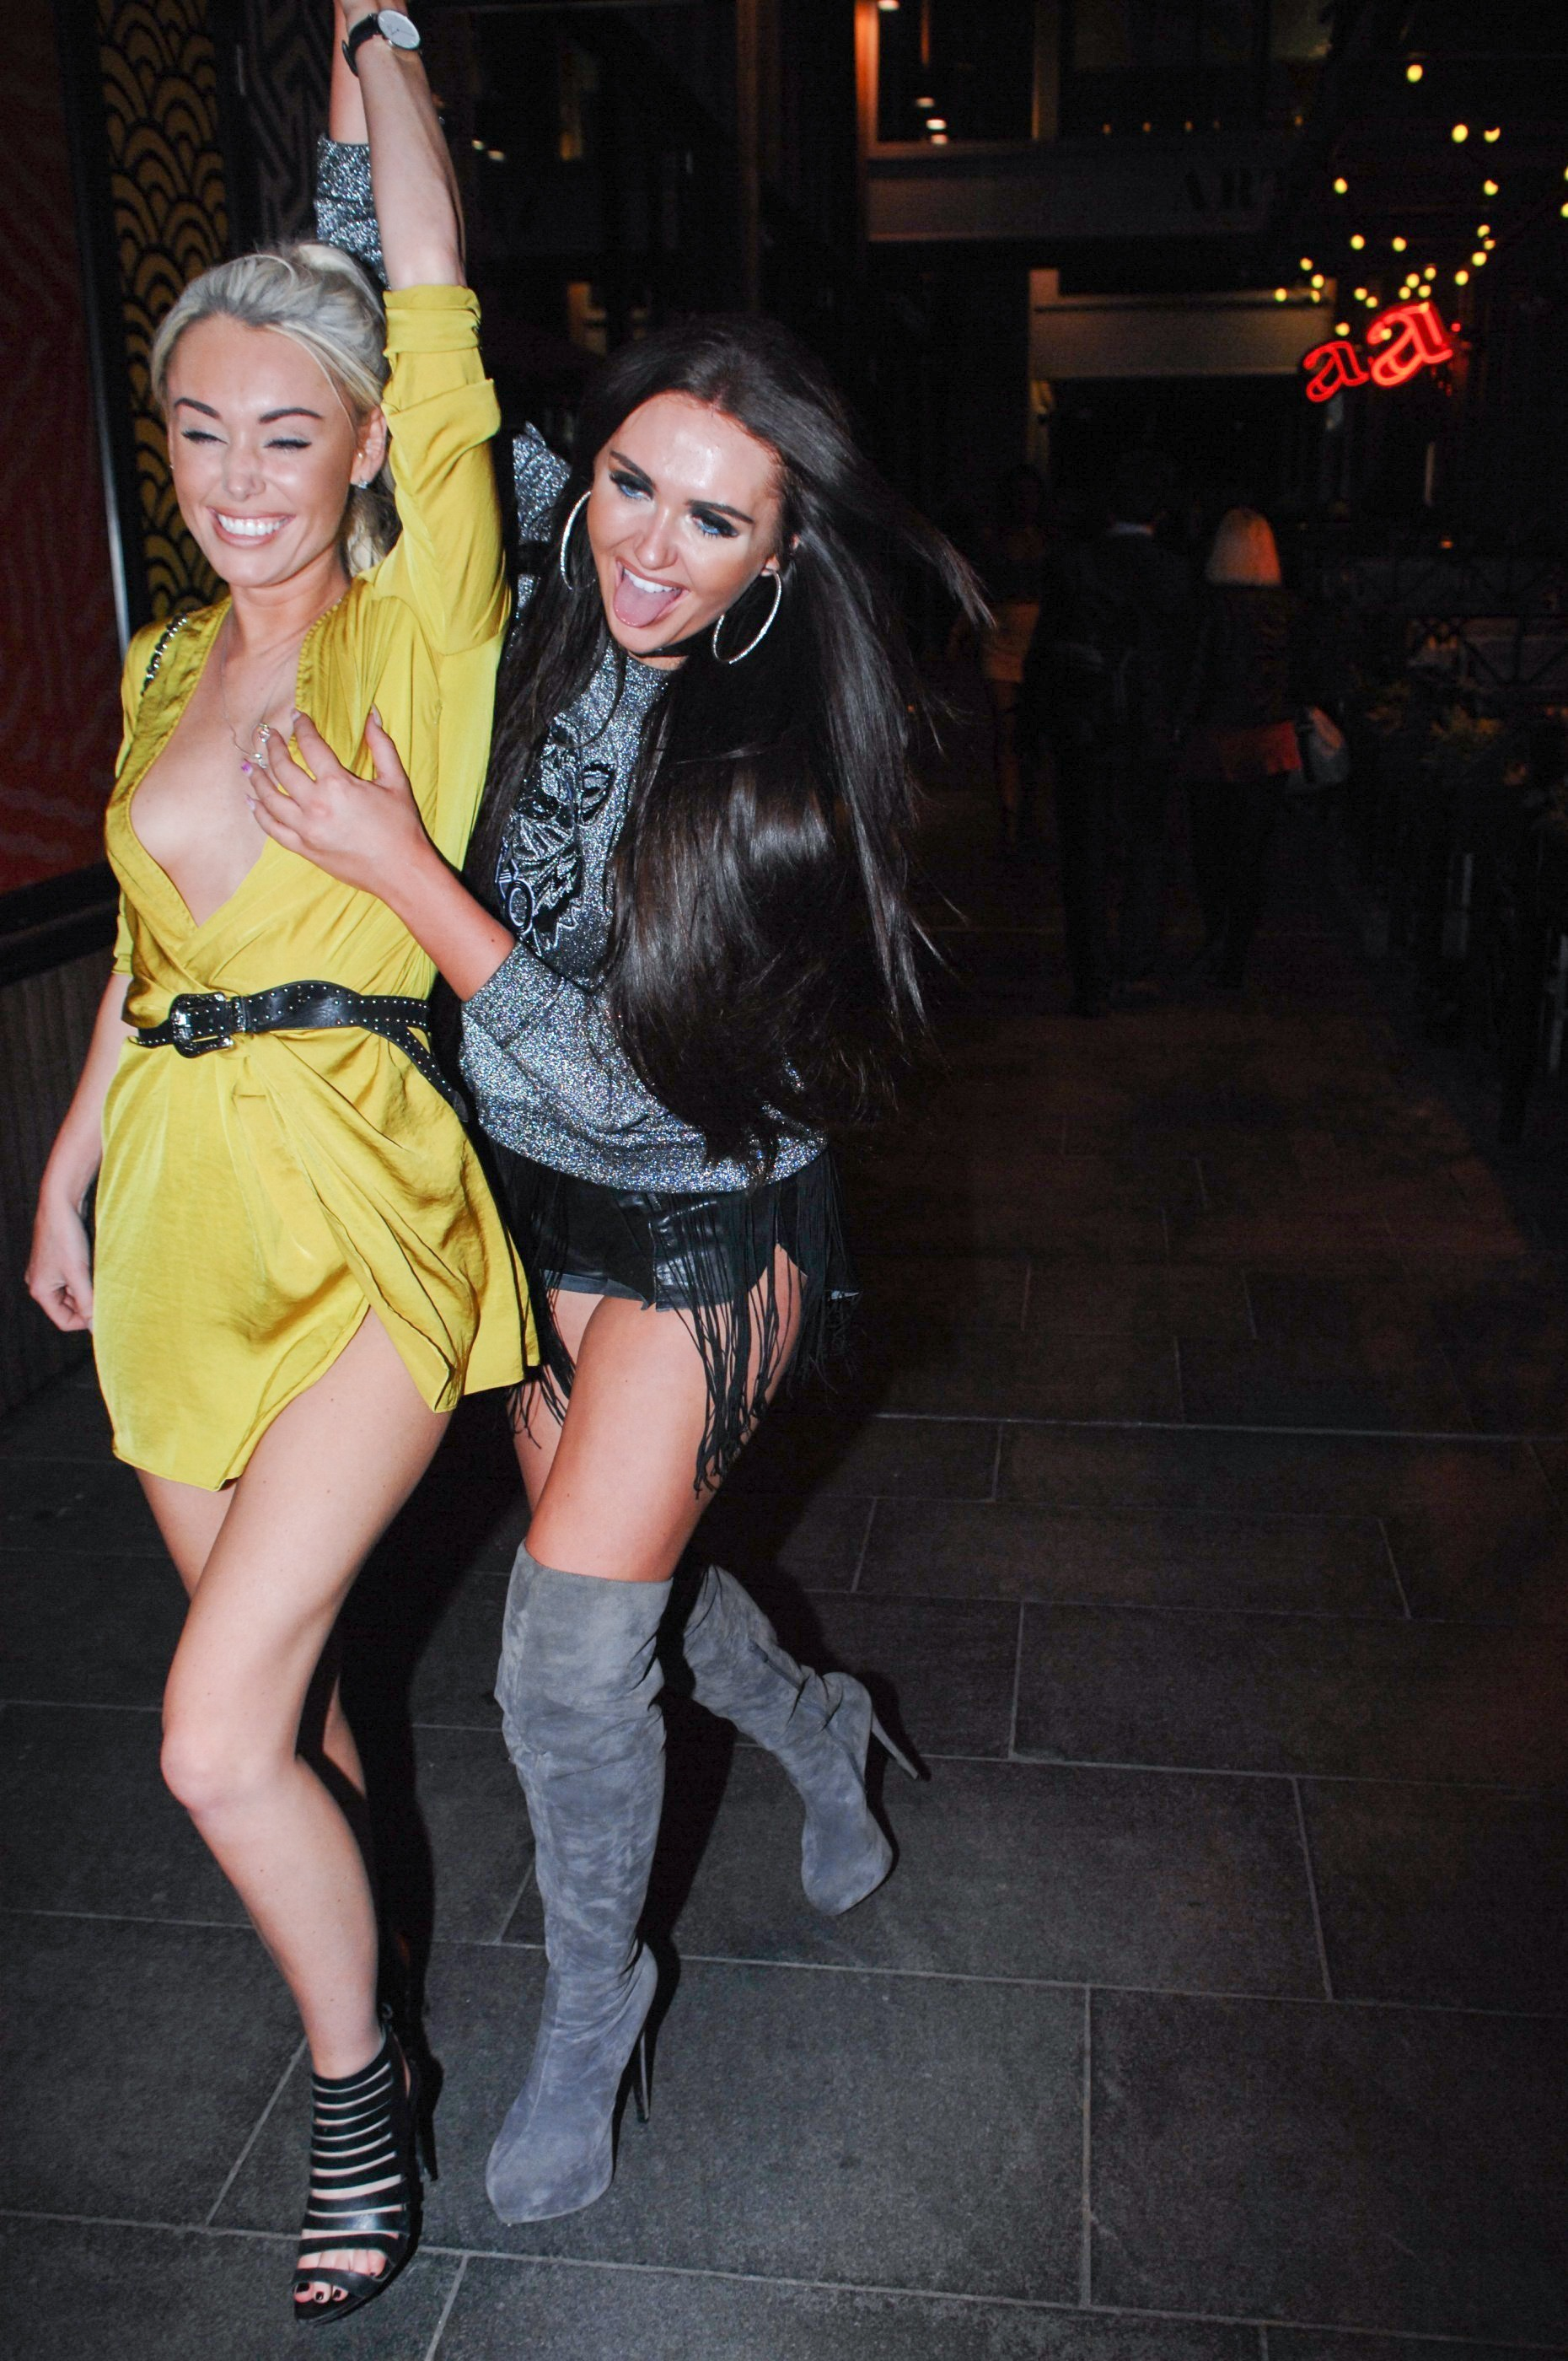 Picture Shows: Steph Ledigo, Charlotte Dawson September 08, 2016 'Ex On The Beach' star Charlotte Dawson arrives at Neighbourhood Bar And Restaurant in Manchester, England. Charlotte was all laughs as she left the bar with her friend Steph Ledigo. Non-Exclusive WORLDWIDE RIGHTS Pictures by : FameFlynet UK © 2016 Tel : +44 (0)20 3551 5049 Email : info@fameflynet.uk.com